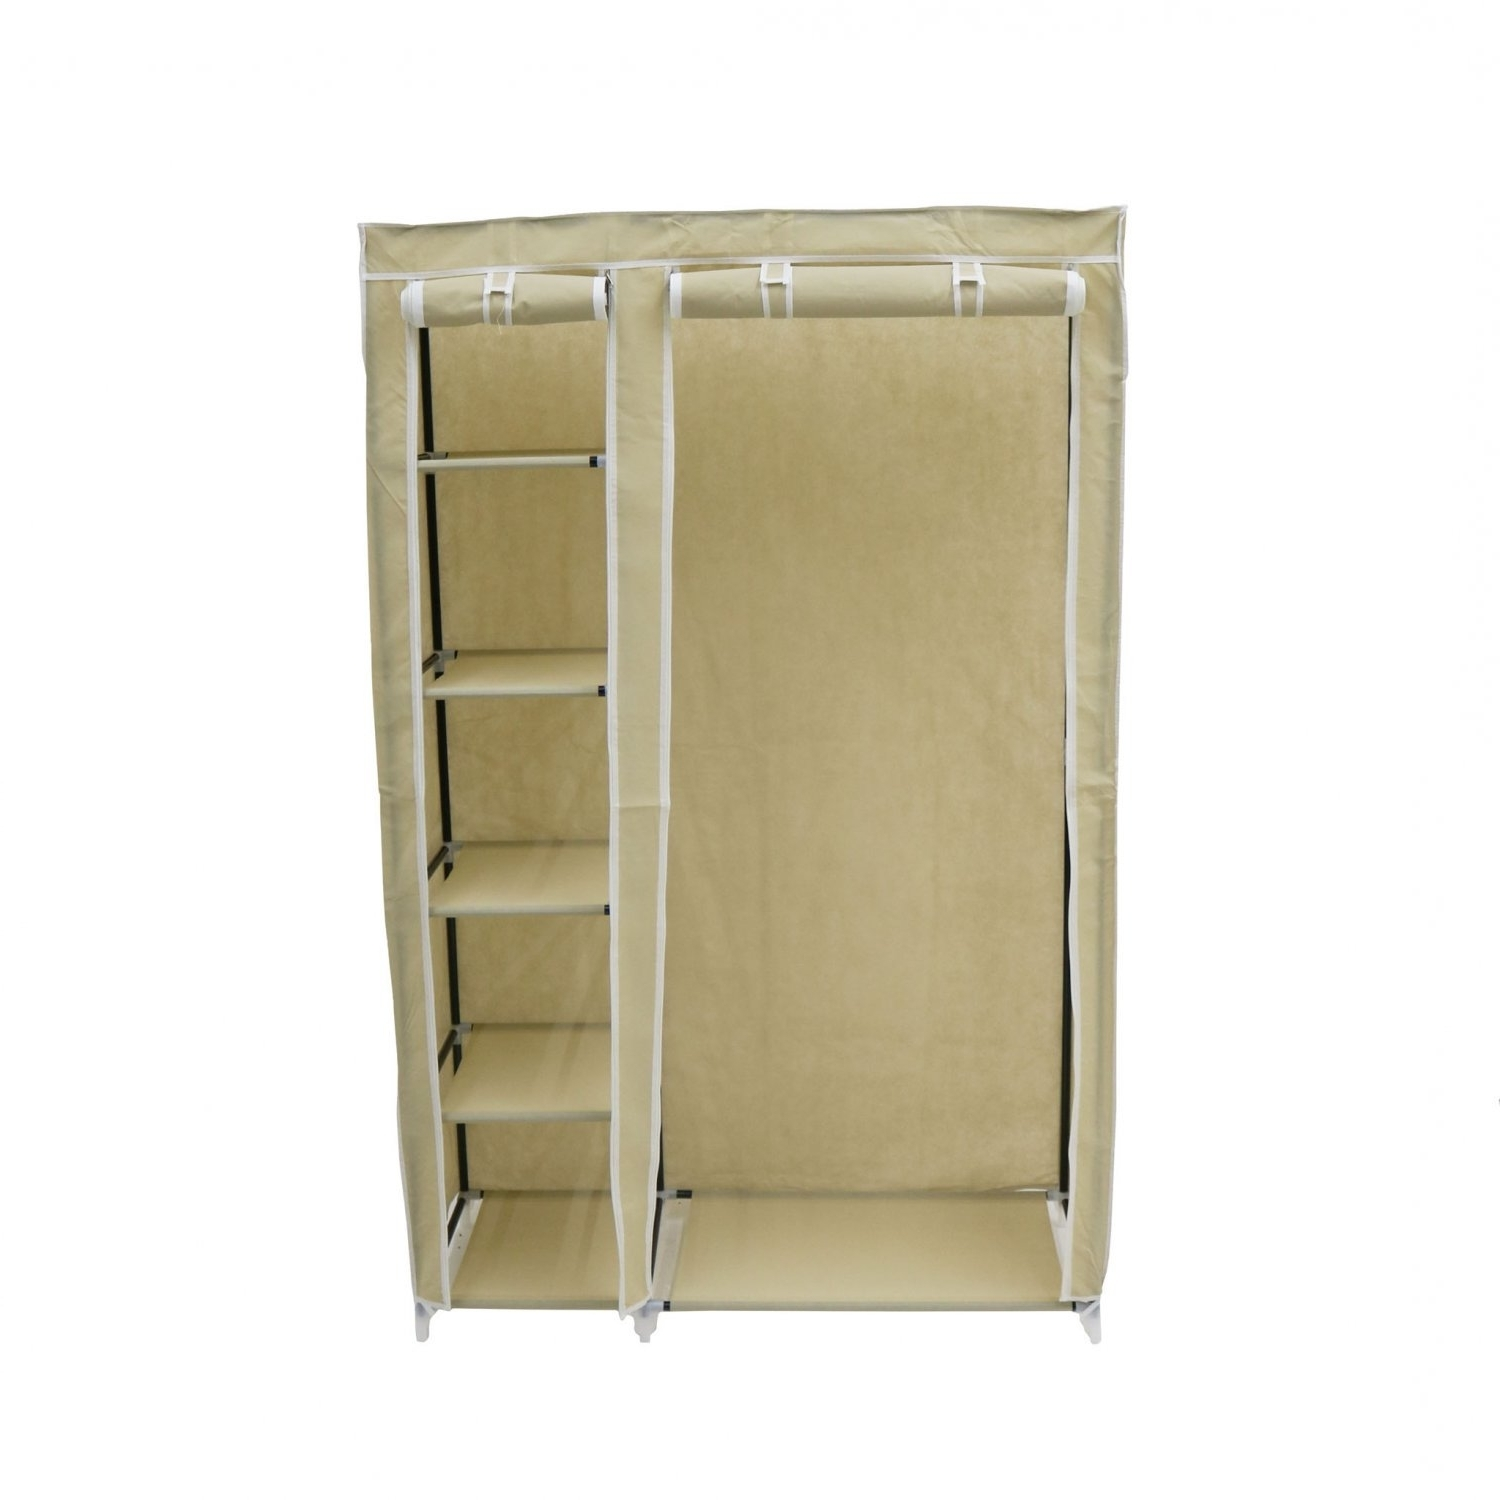 Double Canvas Wardrobes Rail Clothes Storage Regarding Latest Double Cream Canvas Wardrobe Clothes Rail Hanging Storage Closet (View 5 of 15)